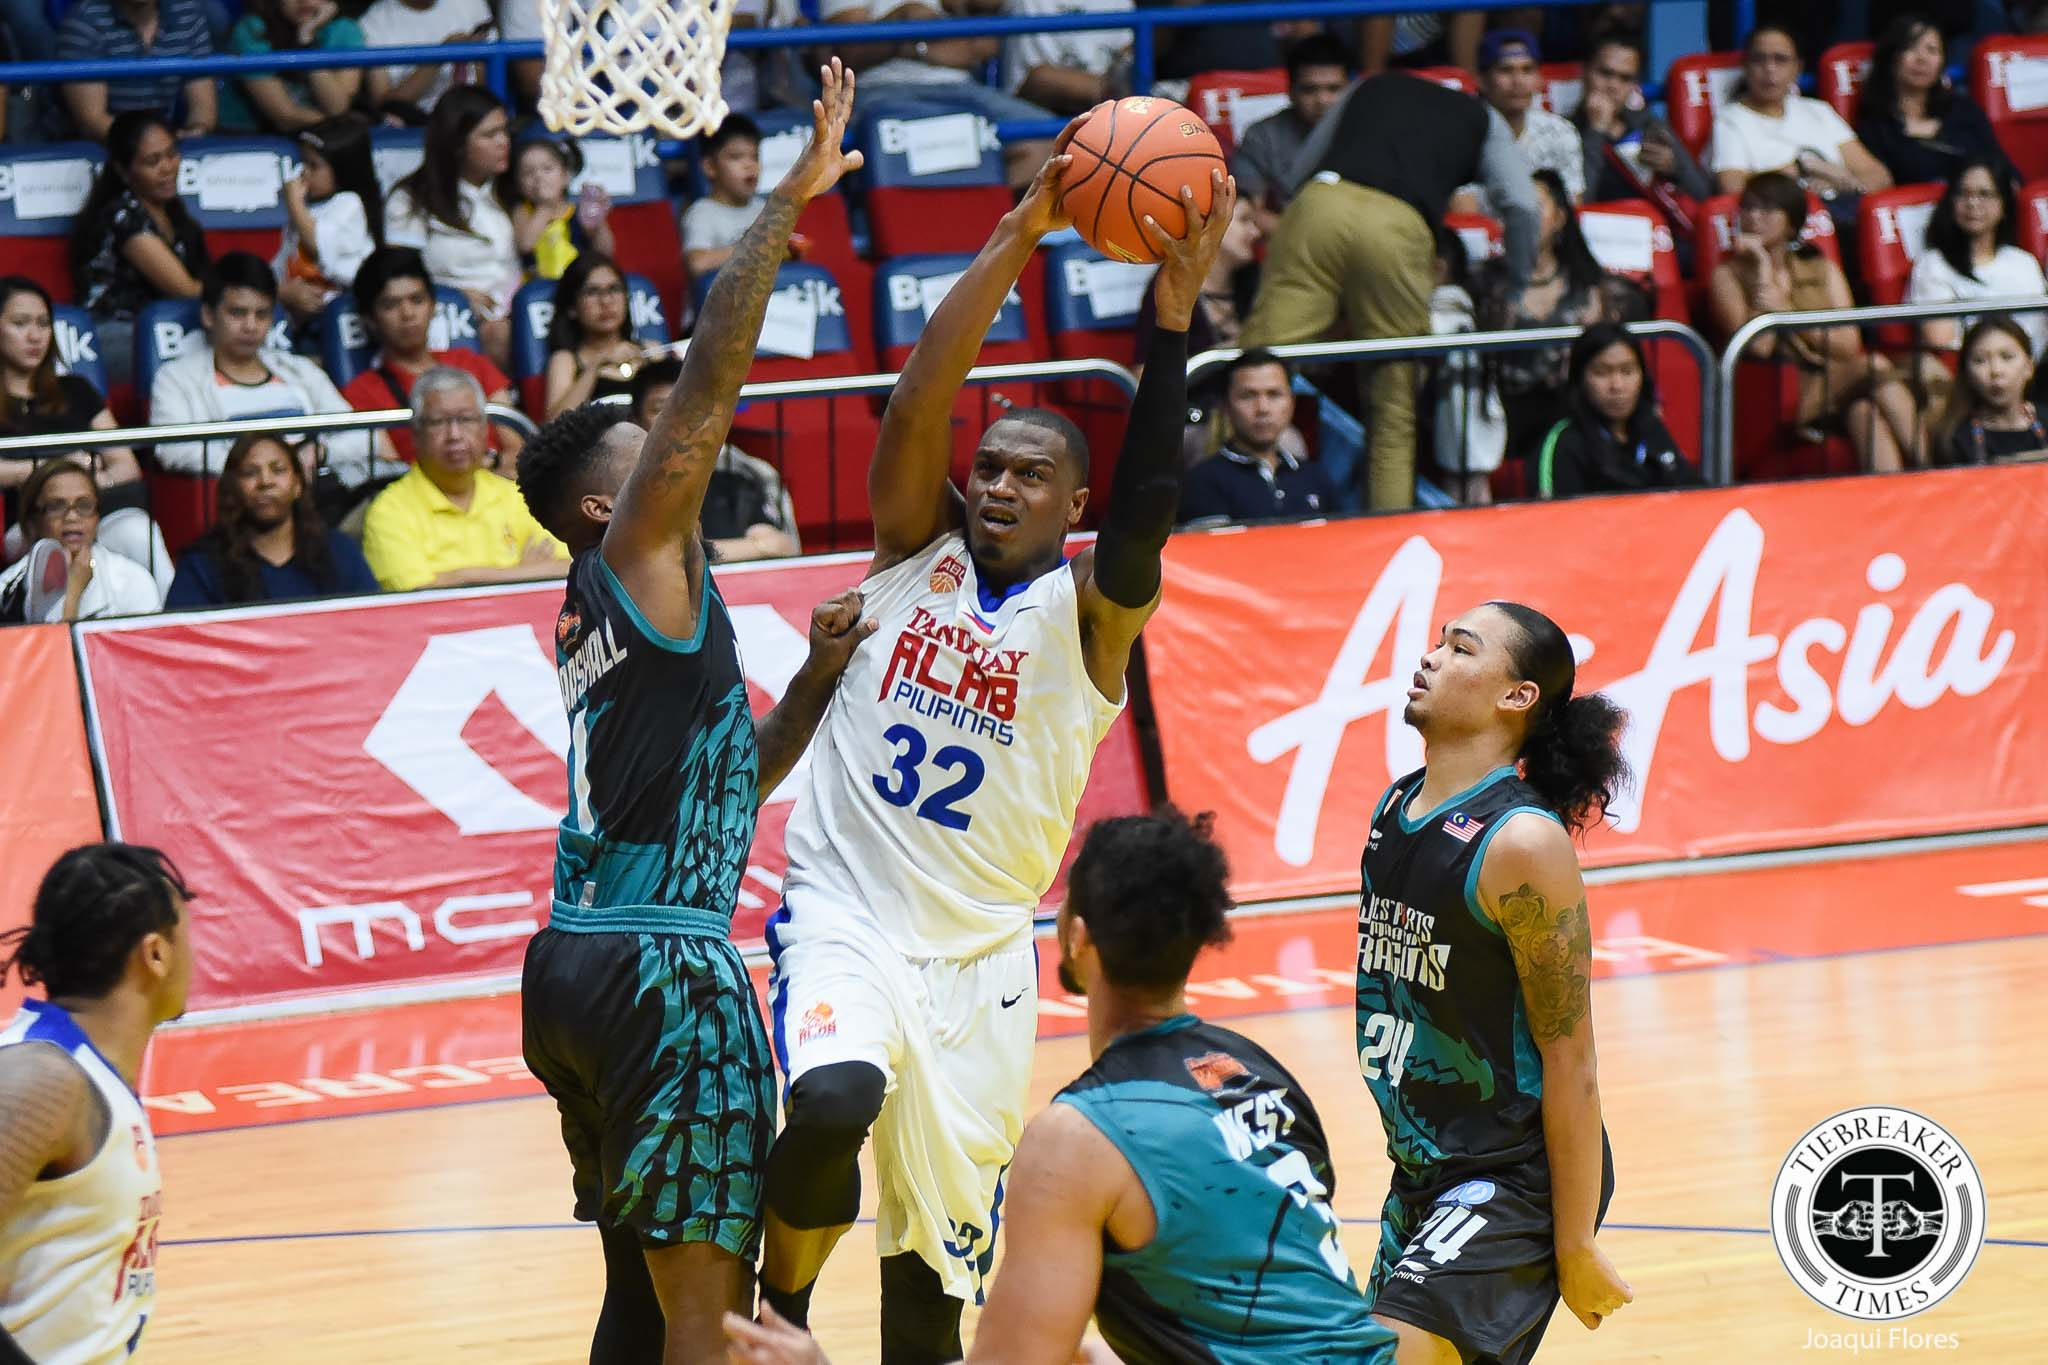 Philippine Sports News - Tiebreaker Times Justin Brownlee, Renaldo Balkman lift Alab to first home win ABL Alab Pilipinas Basketball News  Westsports Malaysia Dragons Robby Celiz Renaldo Balkman Justin Brownlee Josh Urbiztondo Jimmy Alapag Christopher Thomas 2017-18 ABL Season